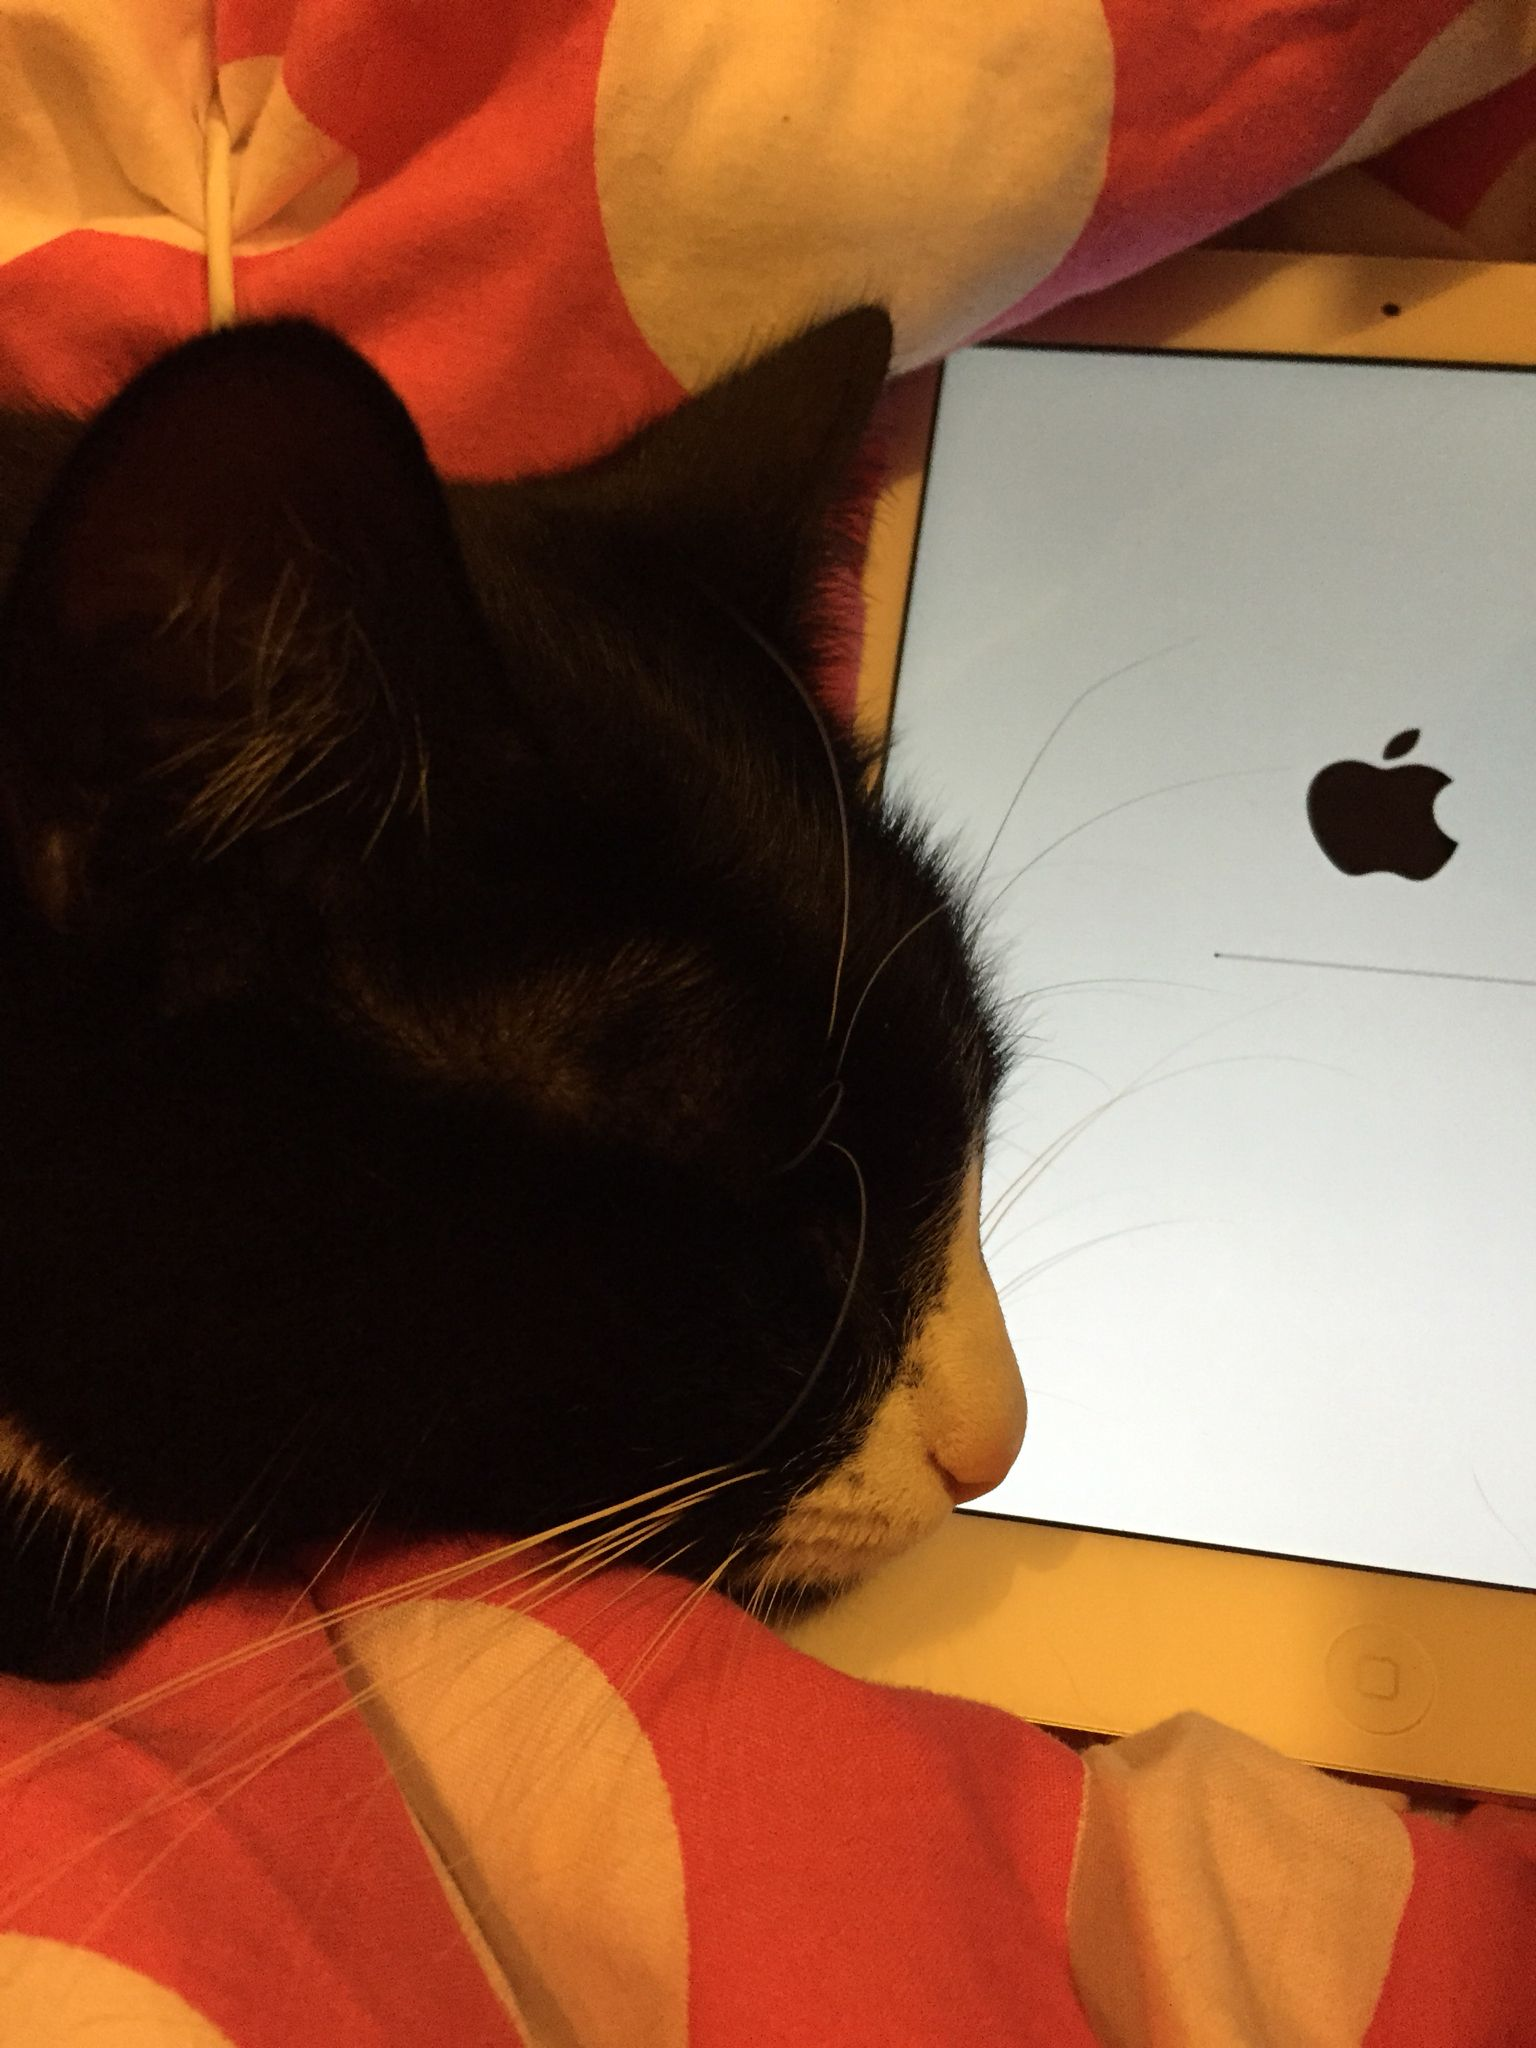 Archie! Get off my iPad!